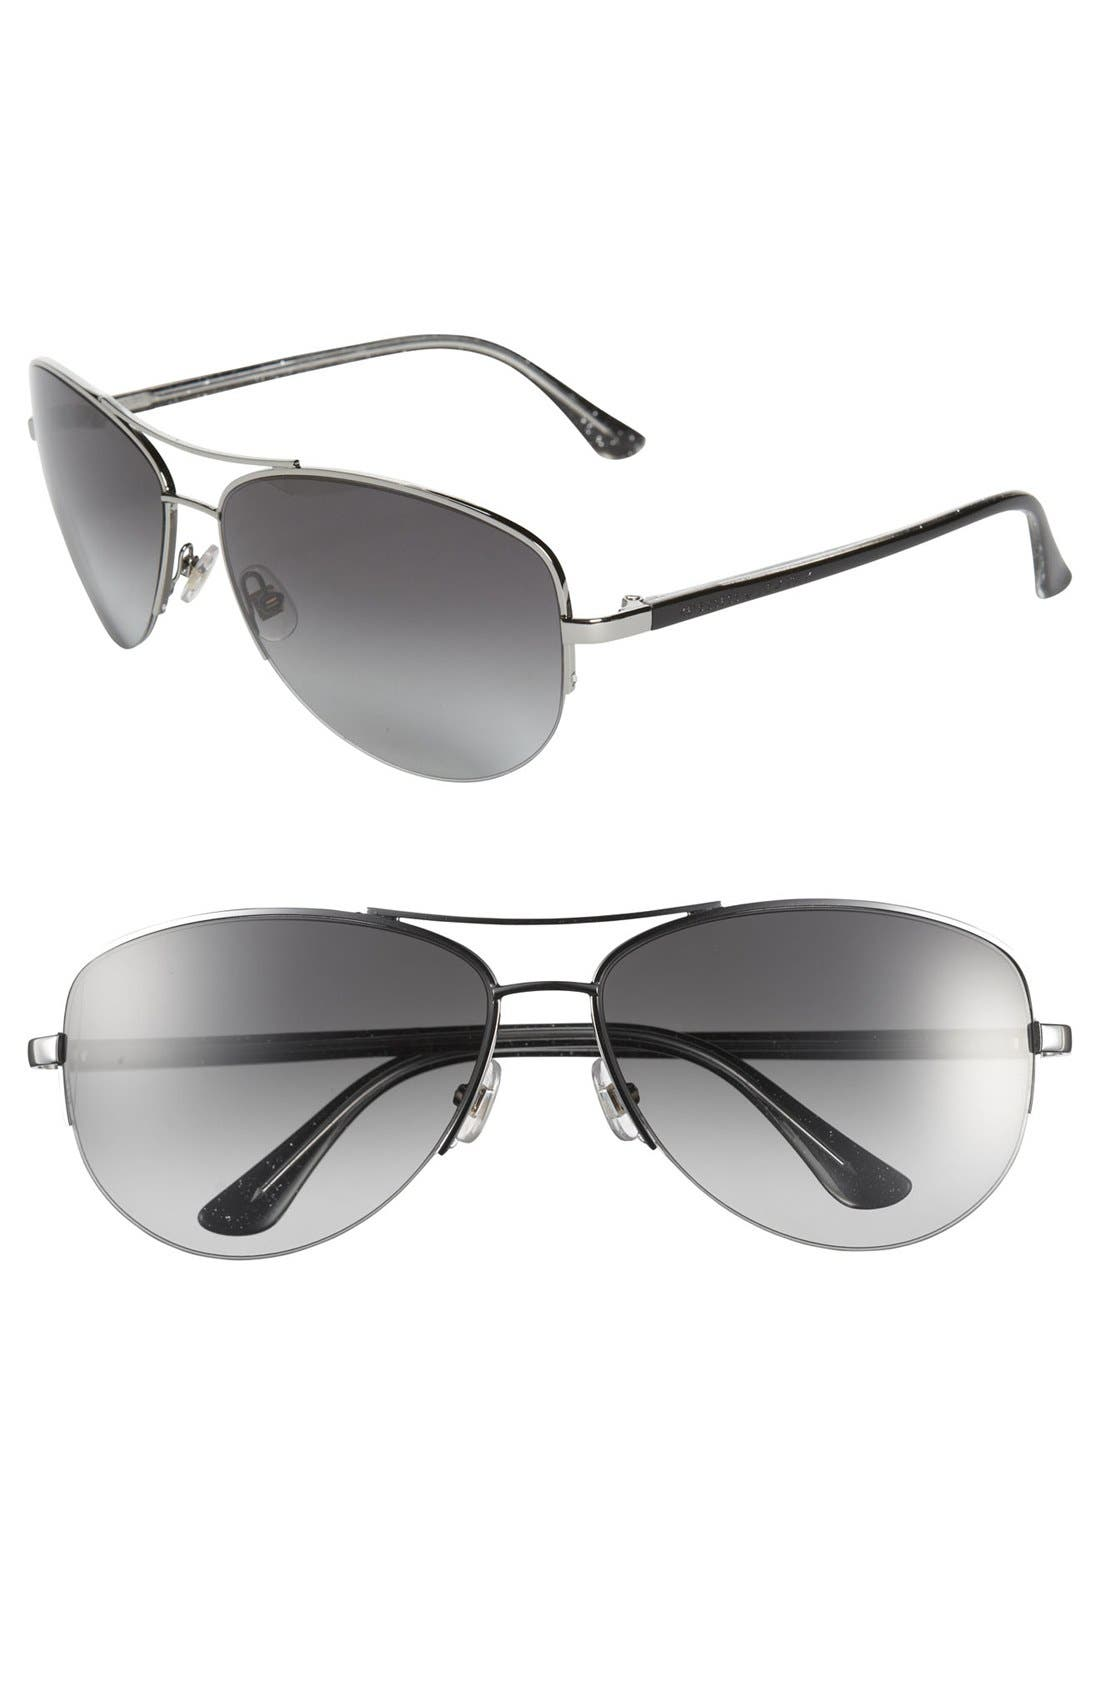 Main Image - kate spade new york 'elysia' 61mm rimless aviator sunglasses